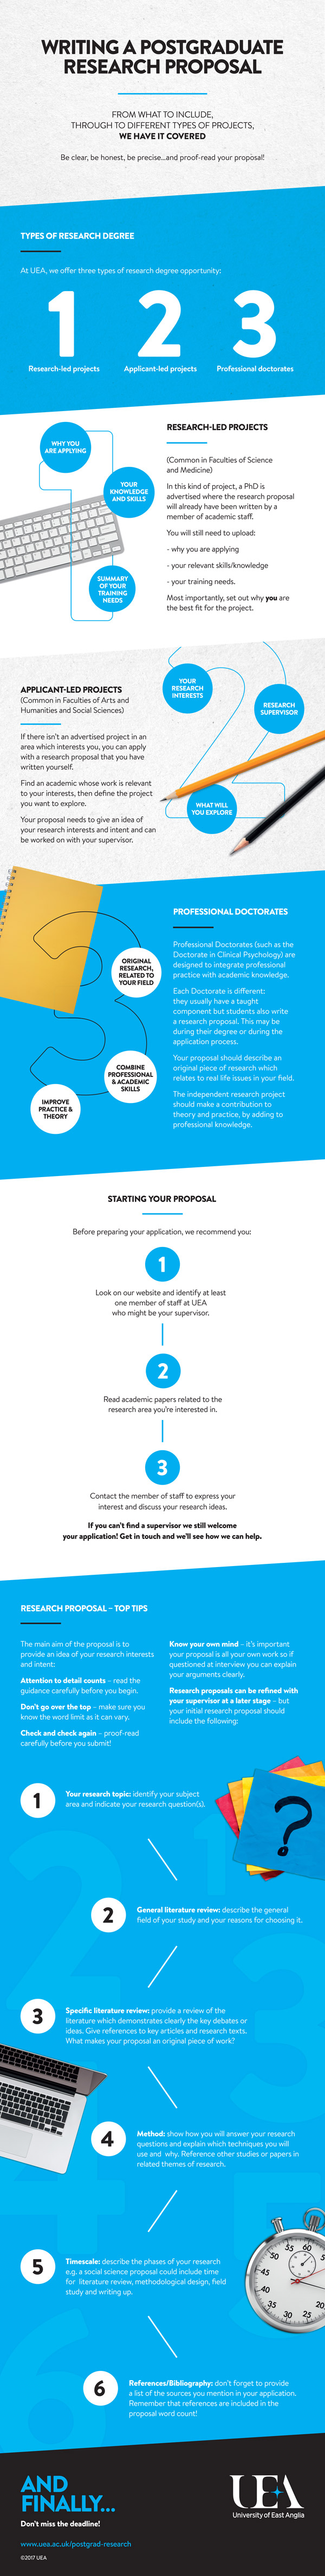 Infographic showing how to write a research proposal.